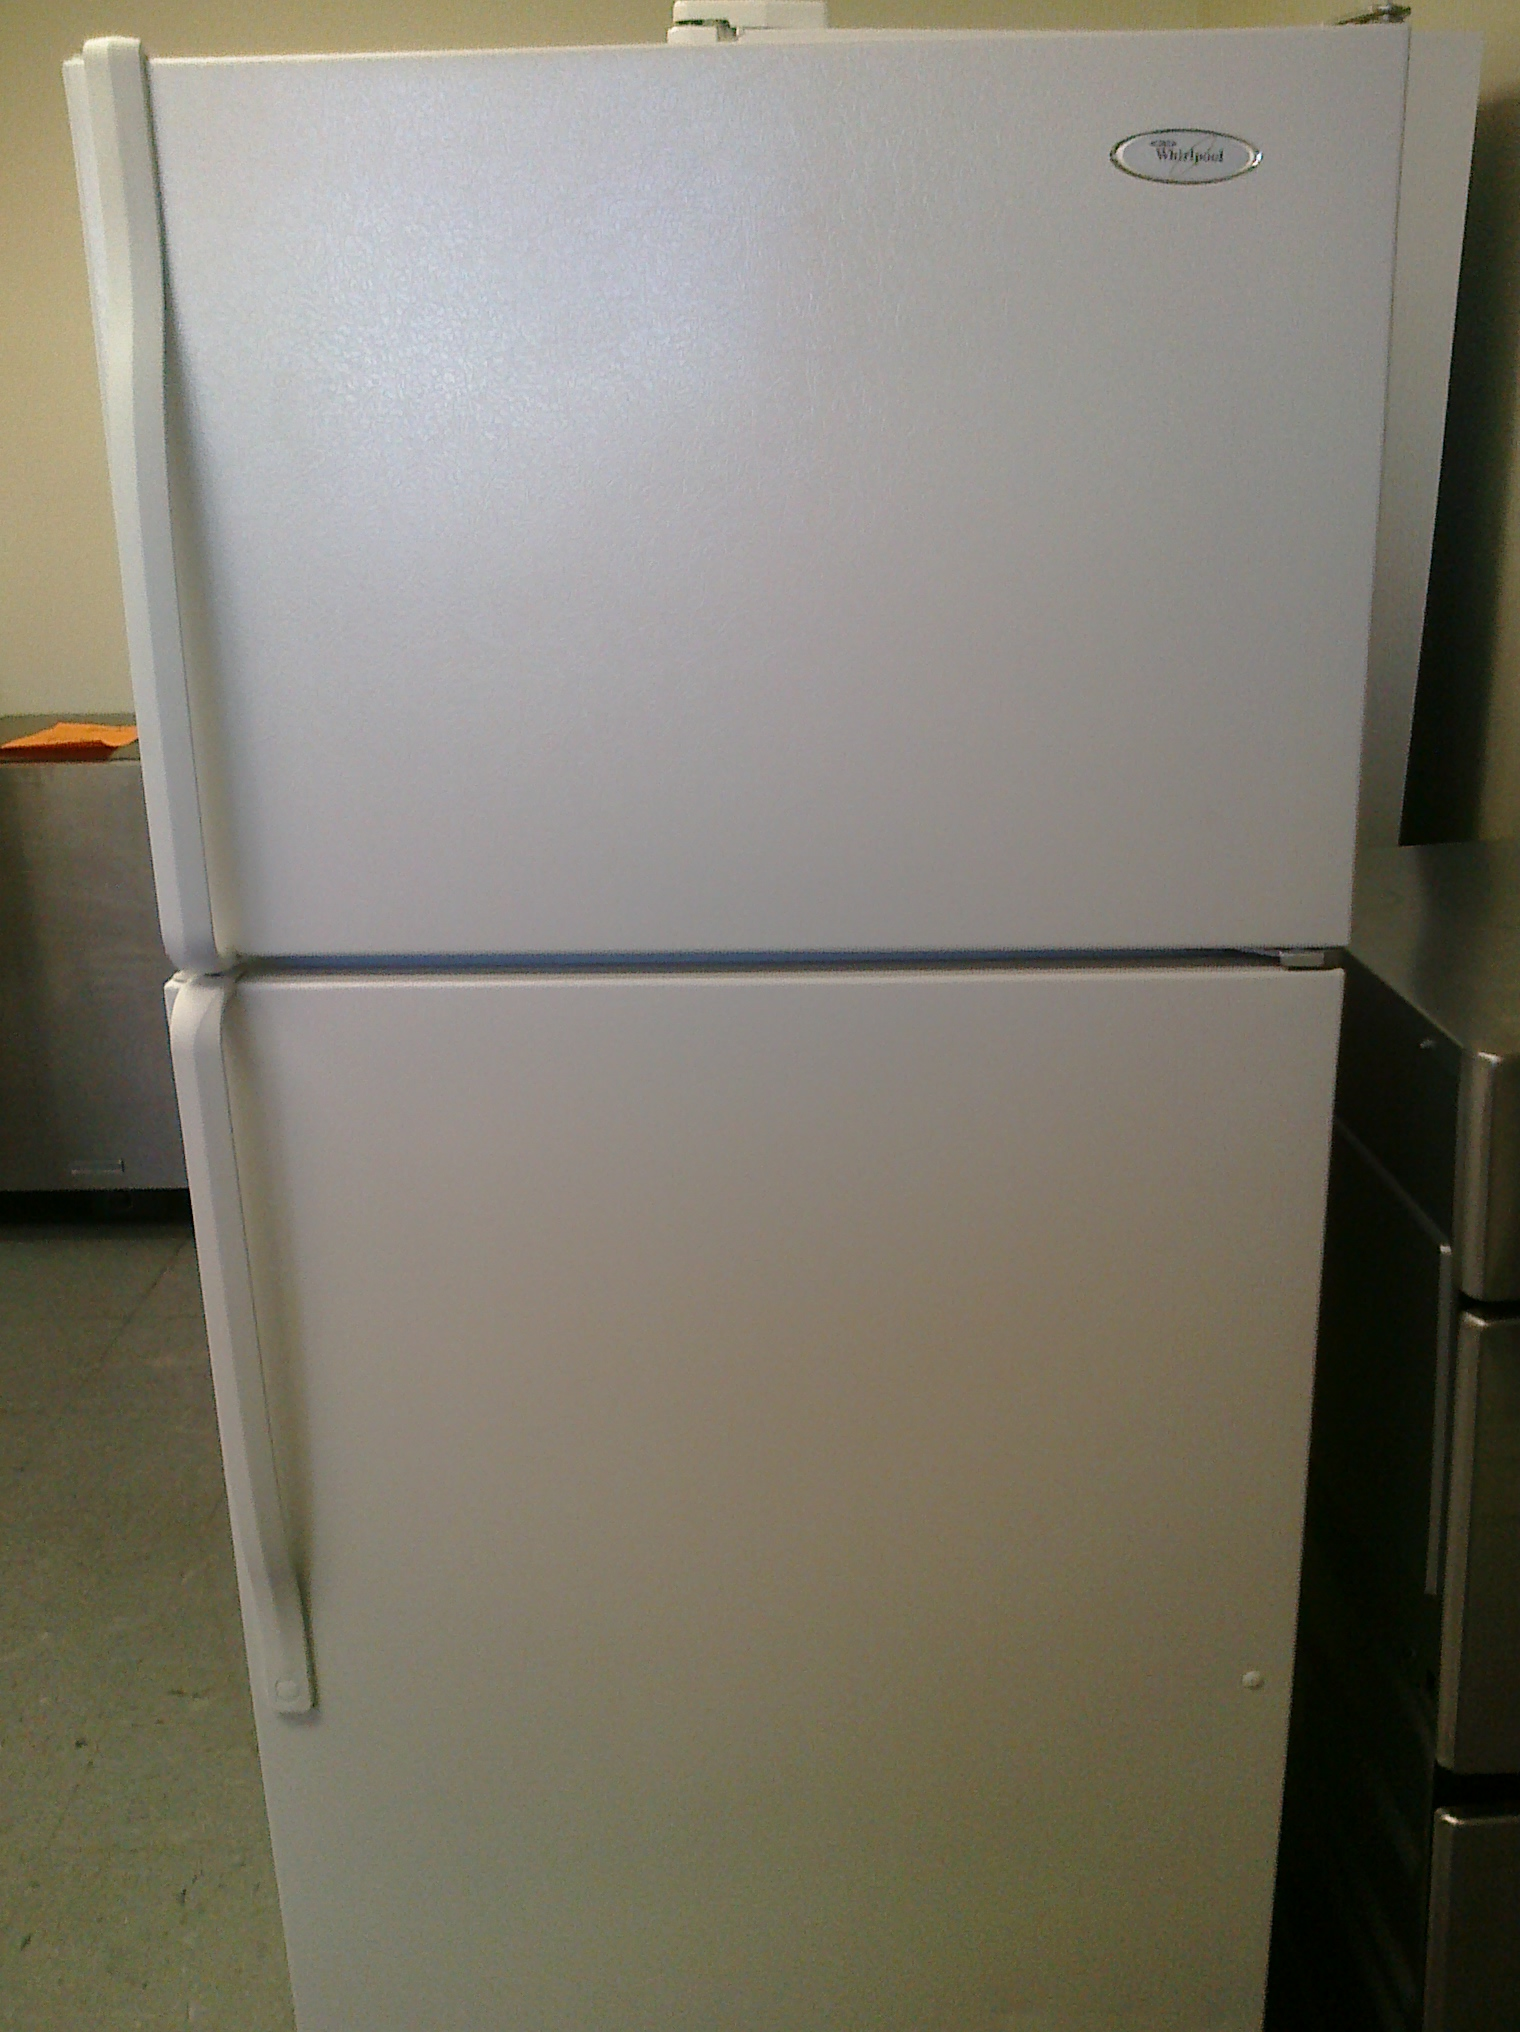 (9) Whirlpool W4TNWFWQ 14 Cubic Foot Top-Mount Refrigerator, White | Feder's Outlet